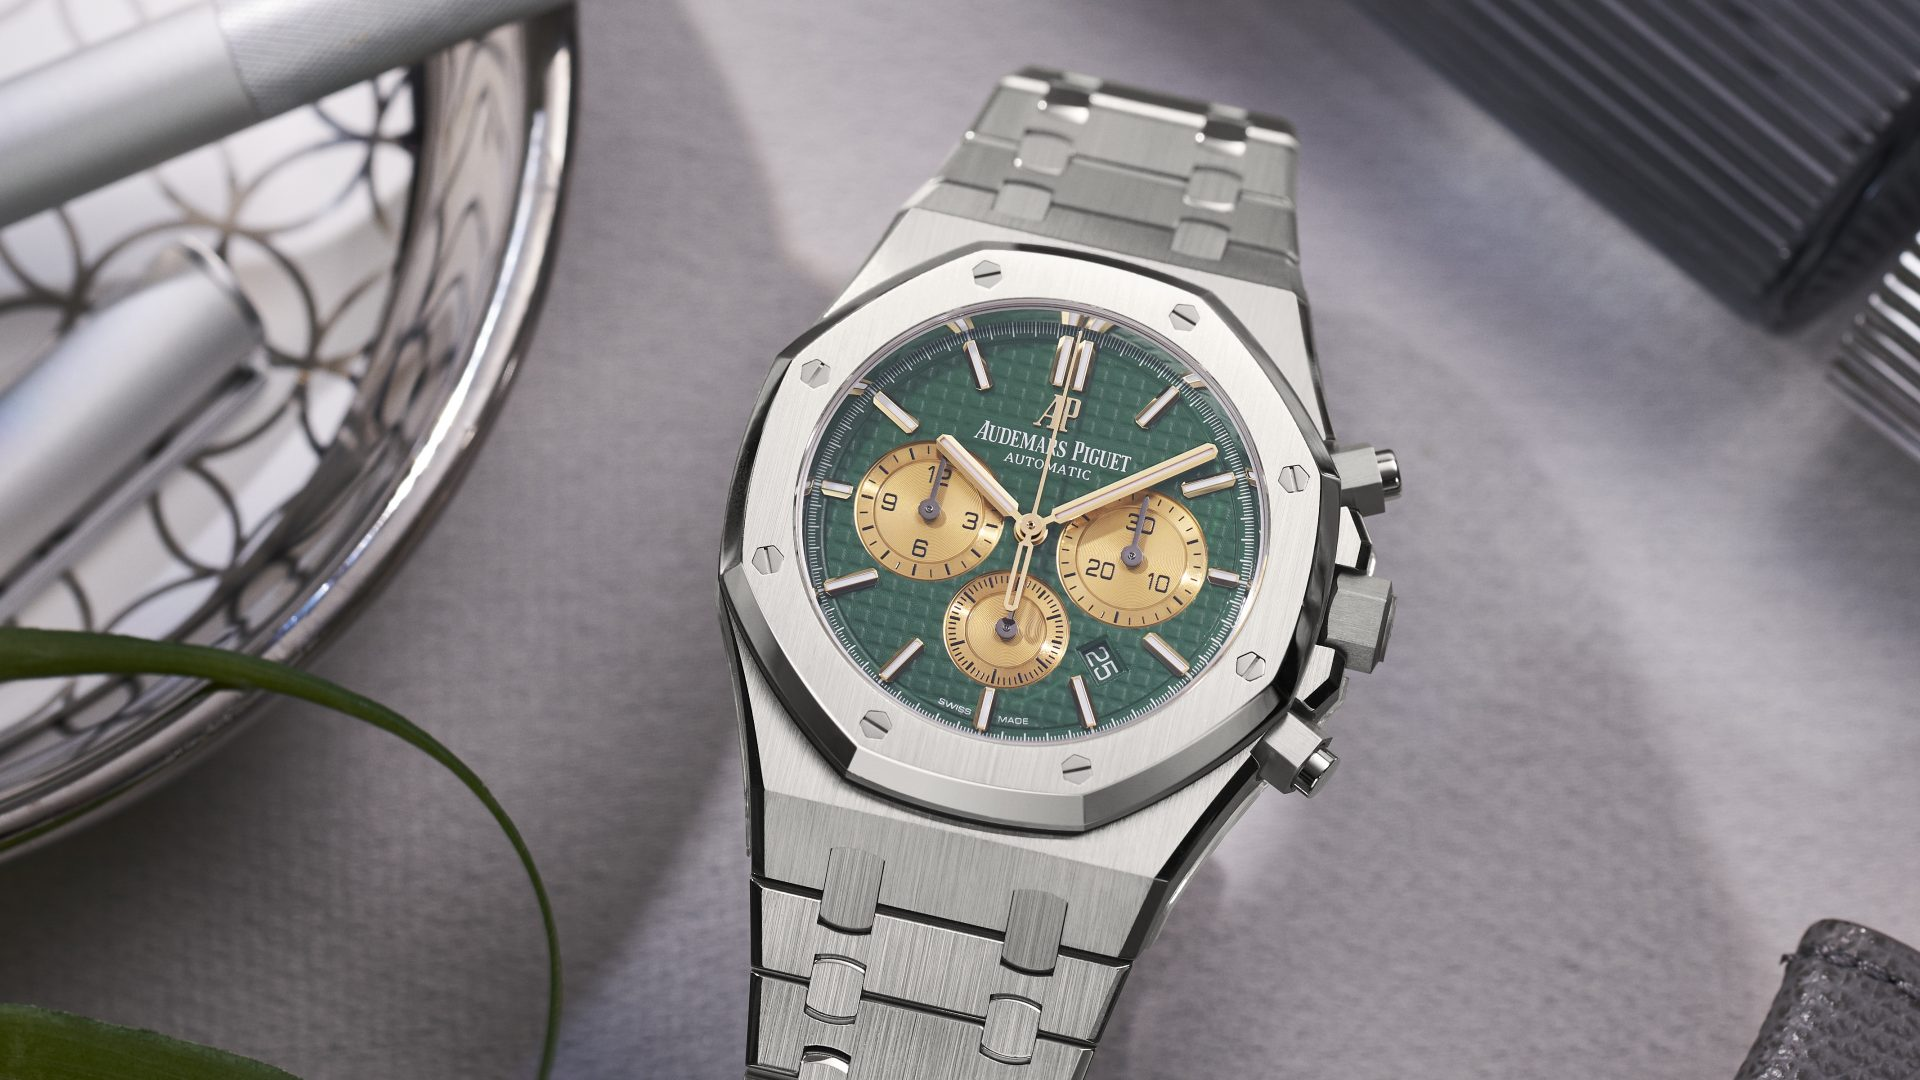 The Hour Glass Introduces Its Exclusive Limited Edition Audemars Piguet Royal Oak Chronograph